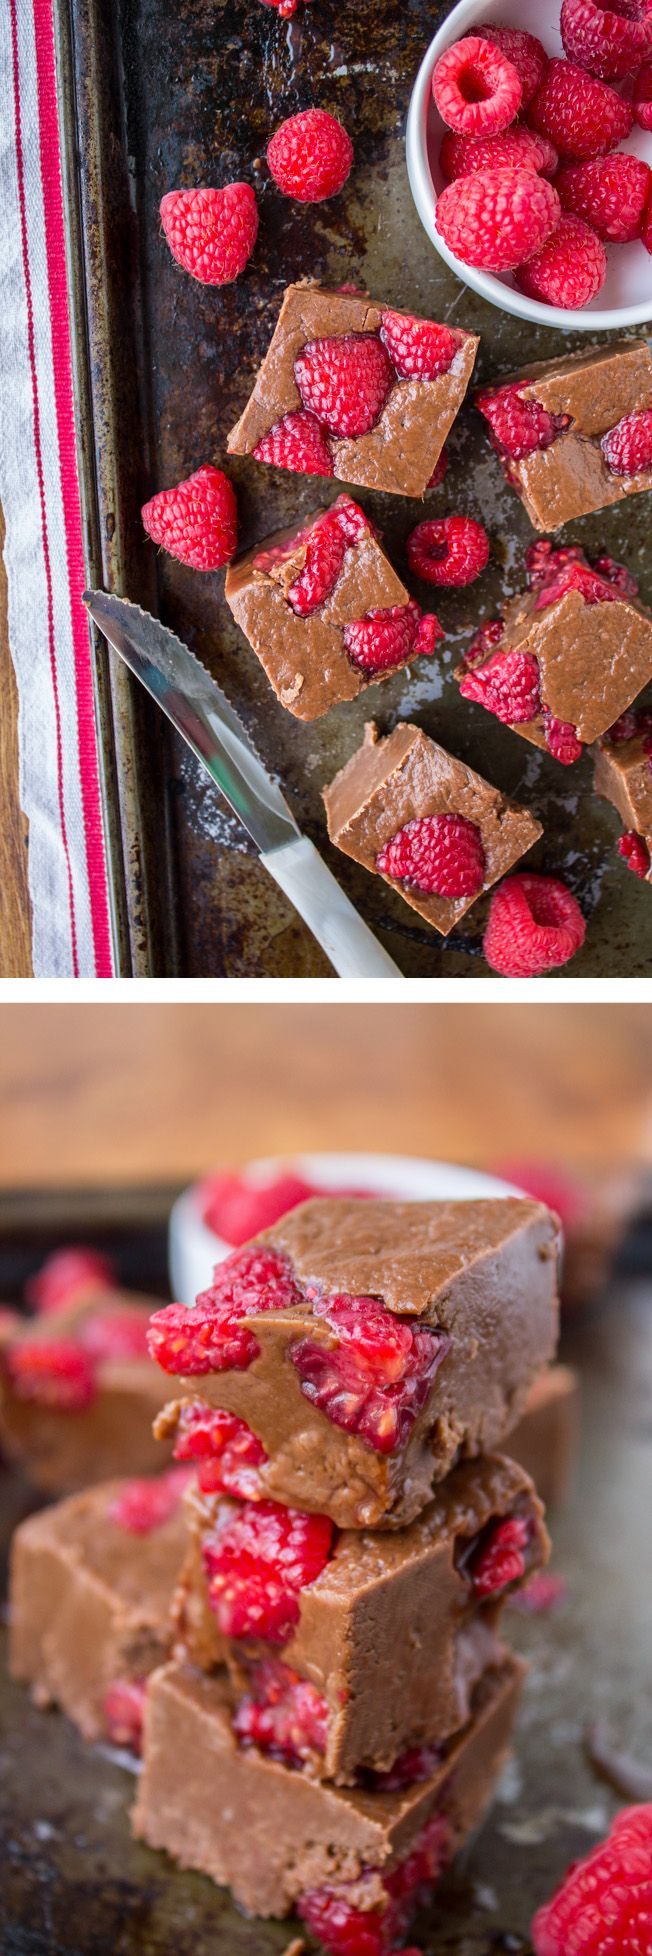 Photo of Nutella Fudge with Raspberries – The Food Charlatan